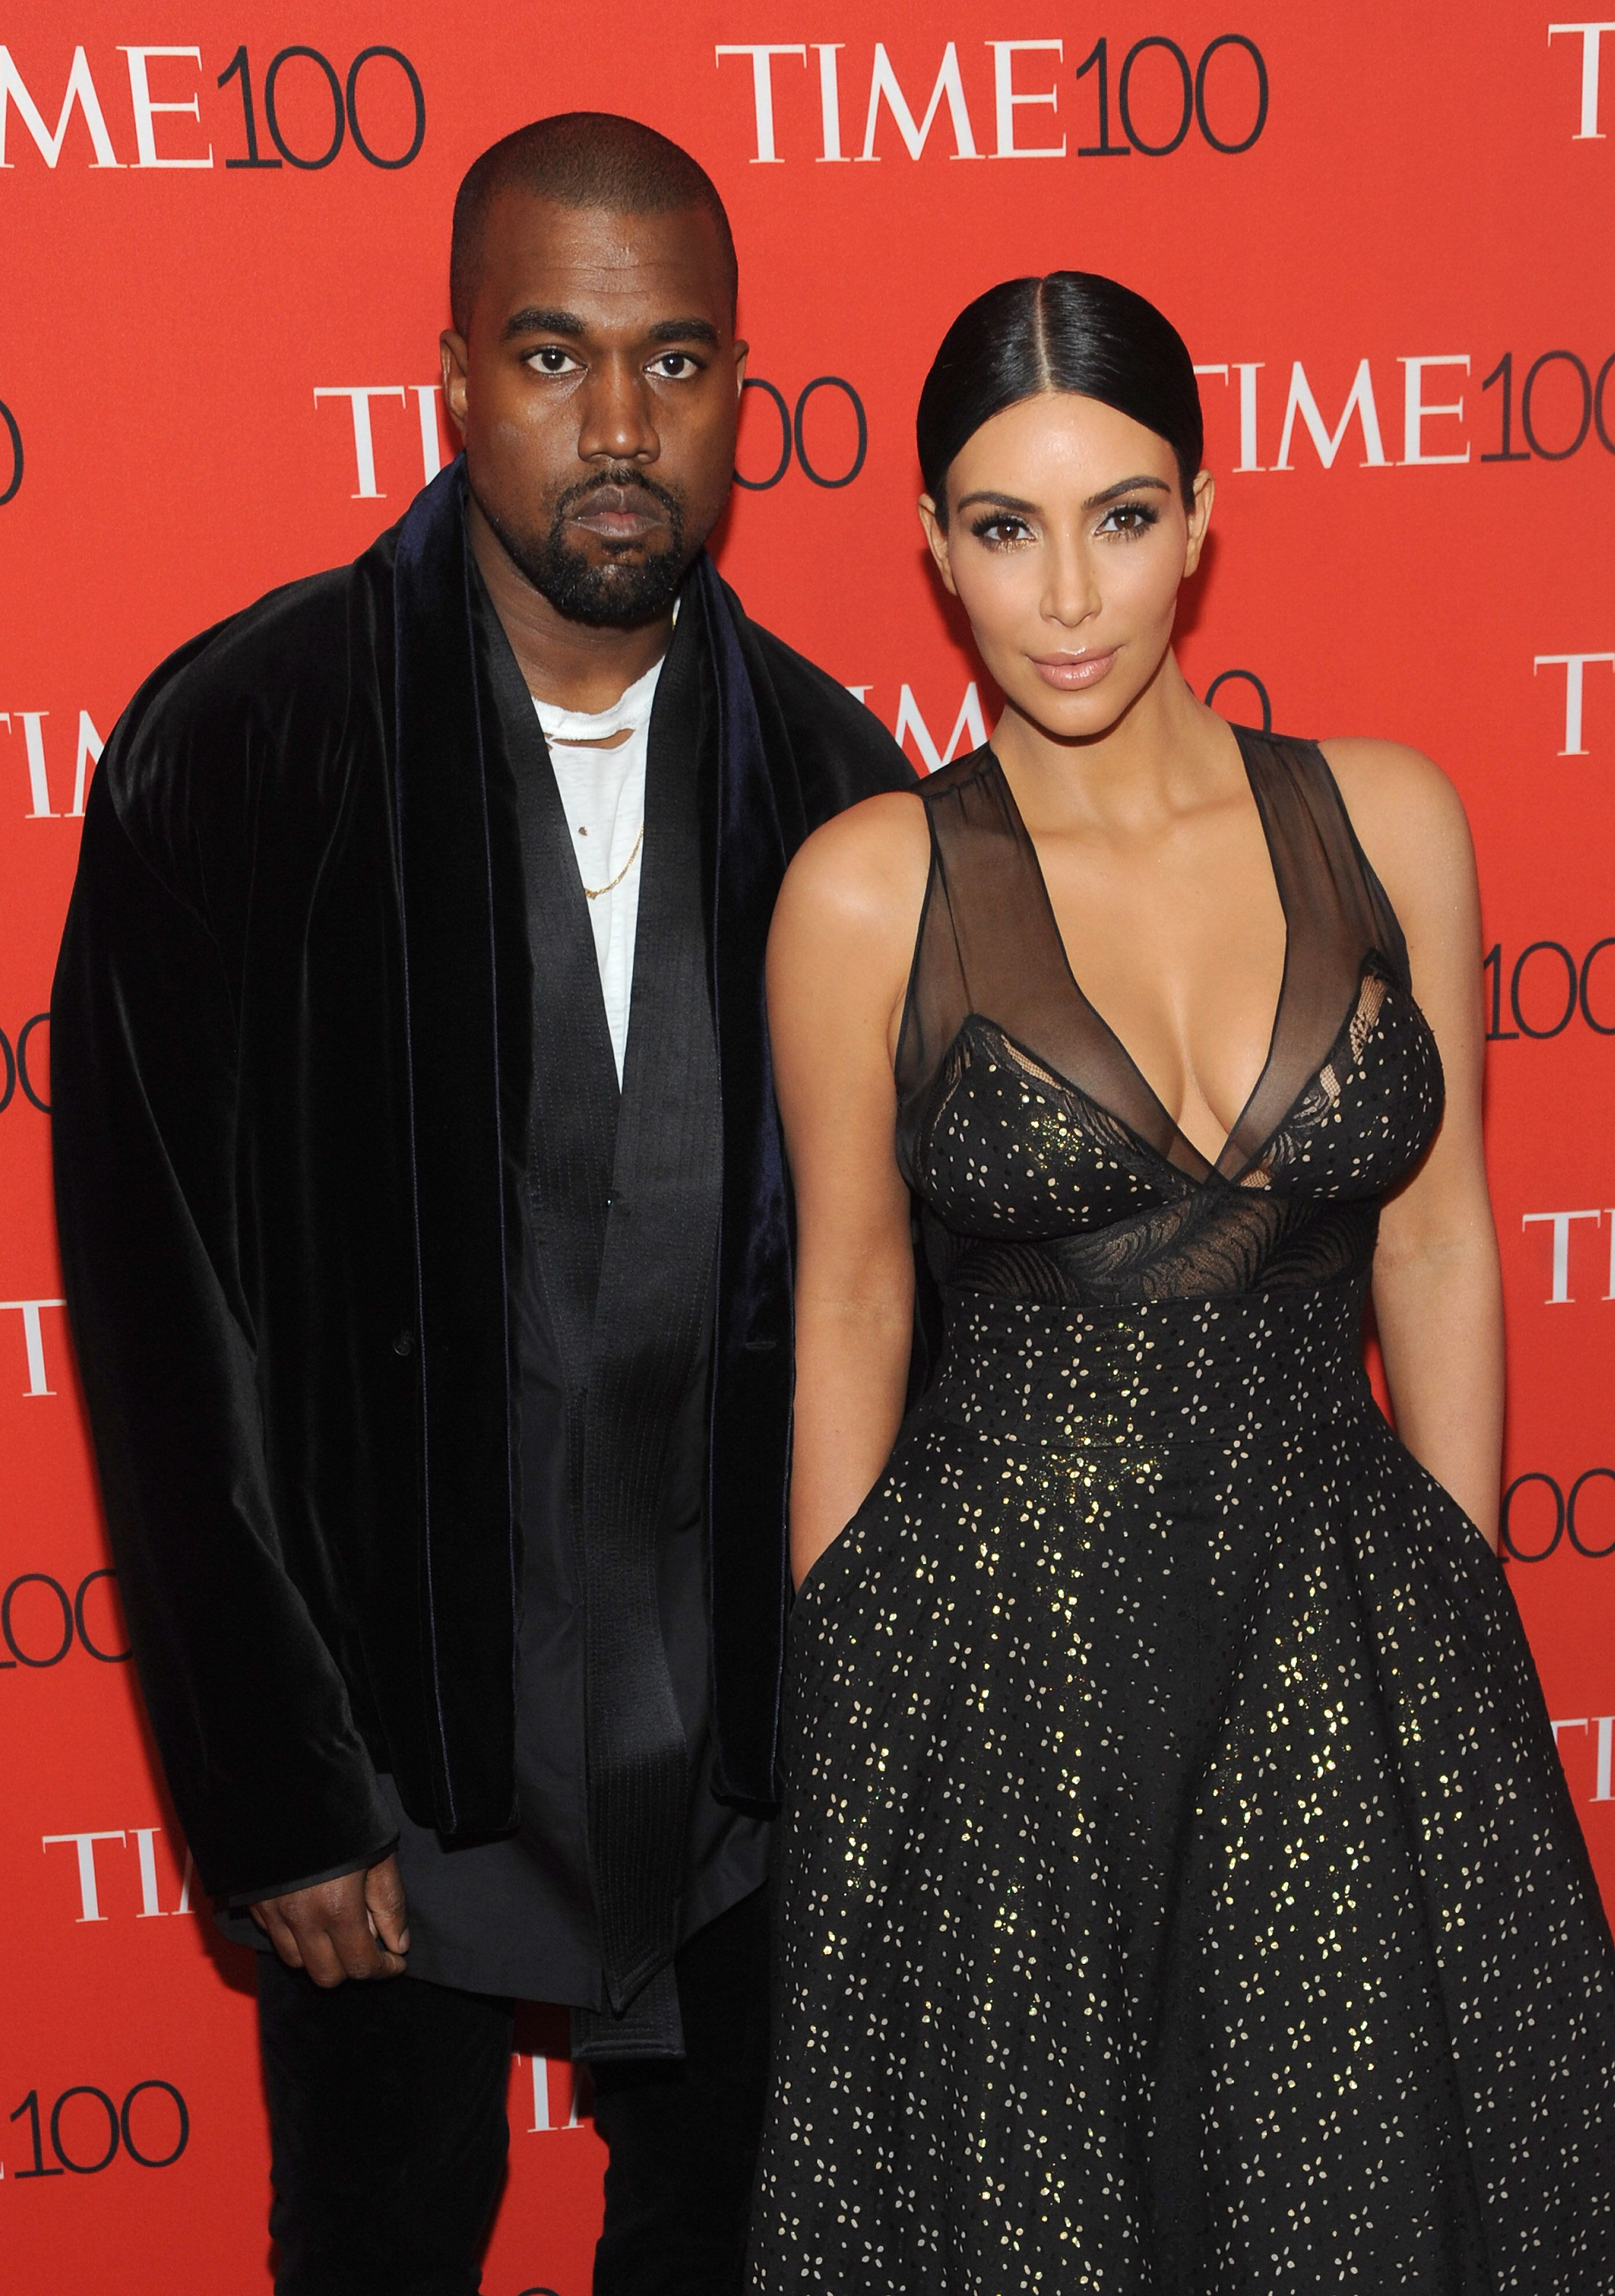 New York, NY- April 21: Kanye West and Kim Kardashian West  attend the TIME 100 Gala at the Frederick P. Rose Hall on April 21, 2015 in New York  City. Credit: John Palmer/MediaPunch/IPX